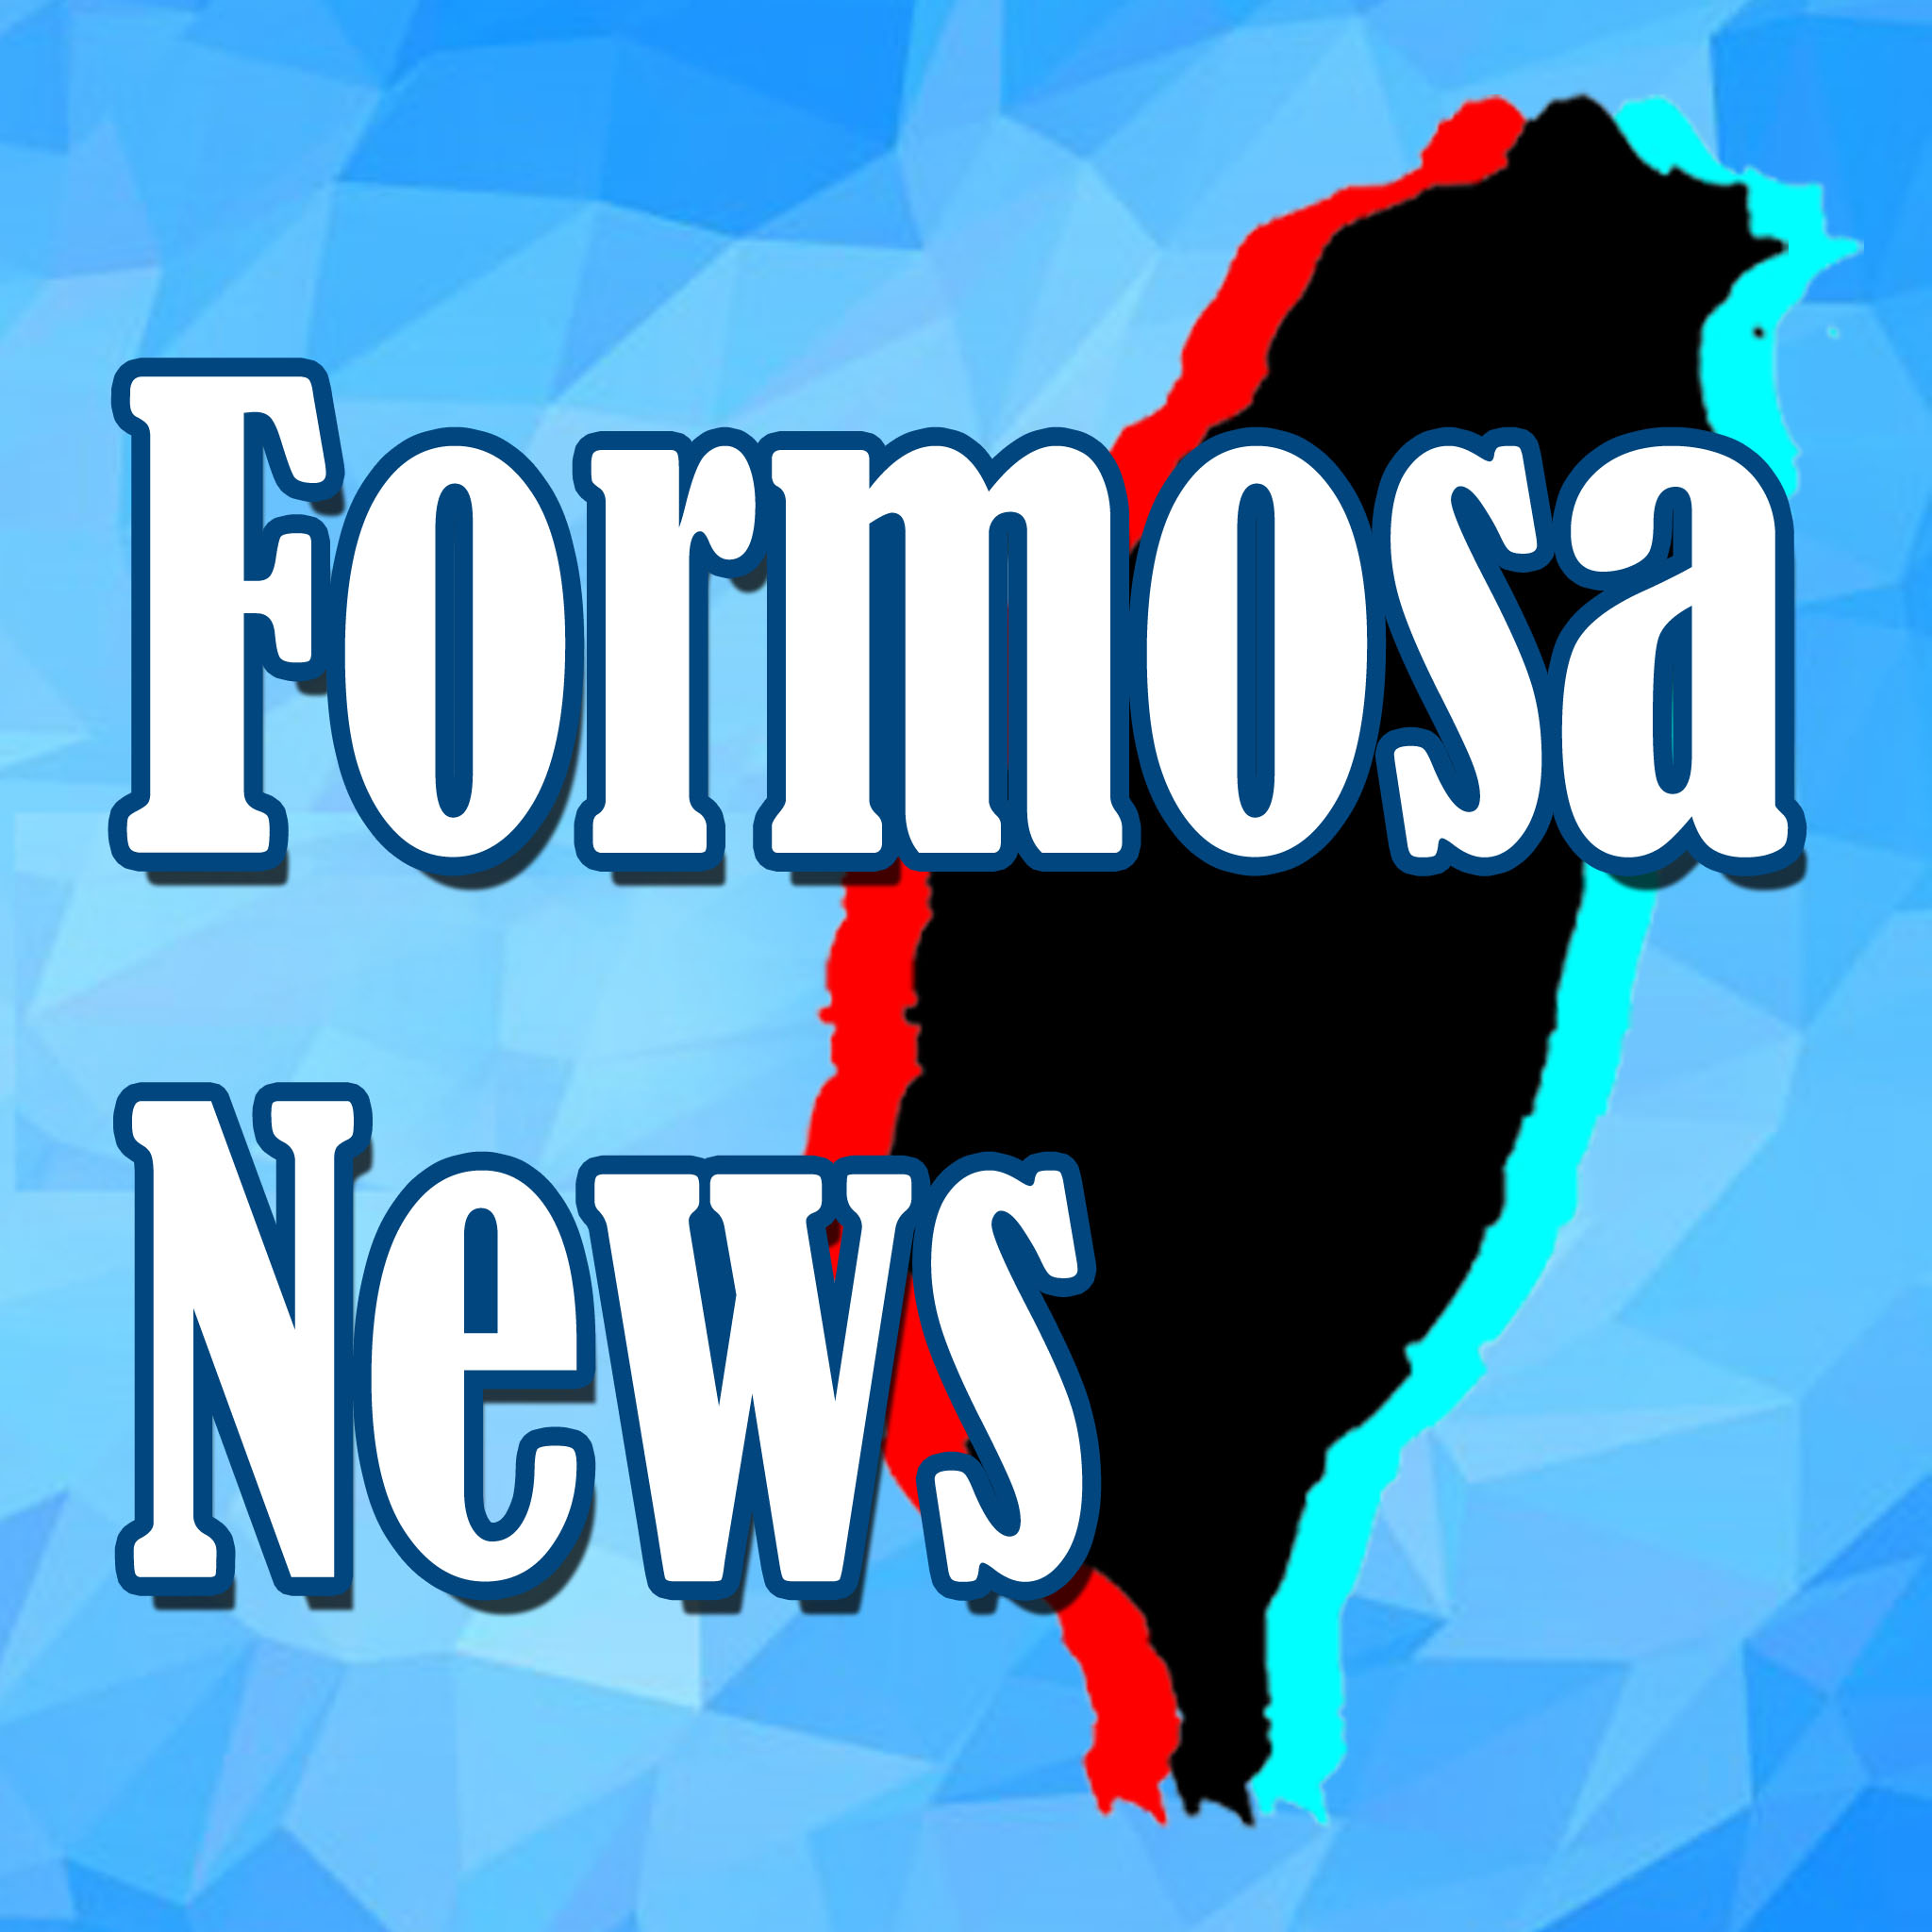 Oct 16, 2020 Formosa Headline News